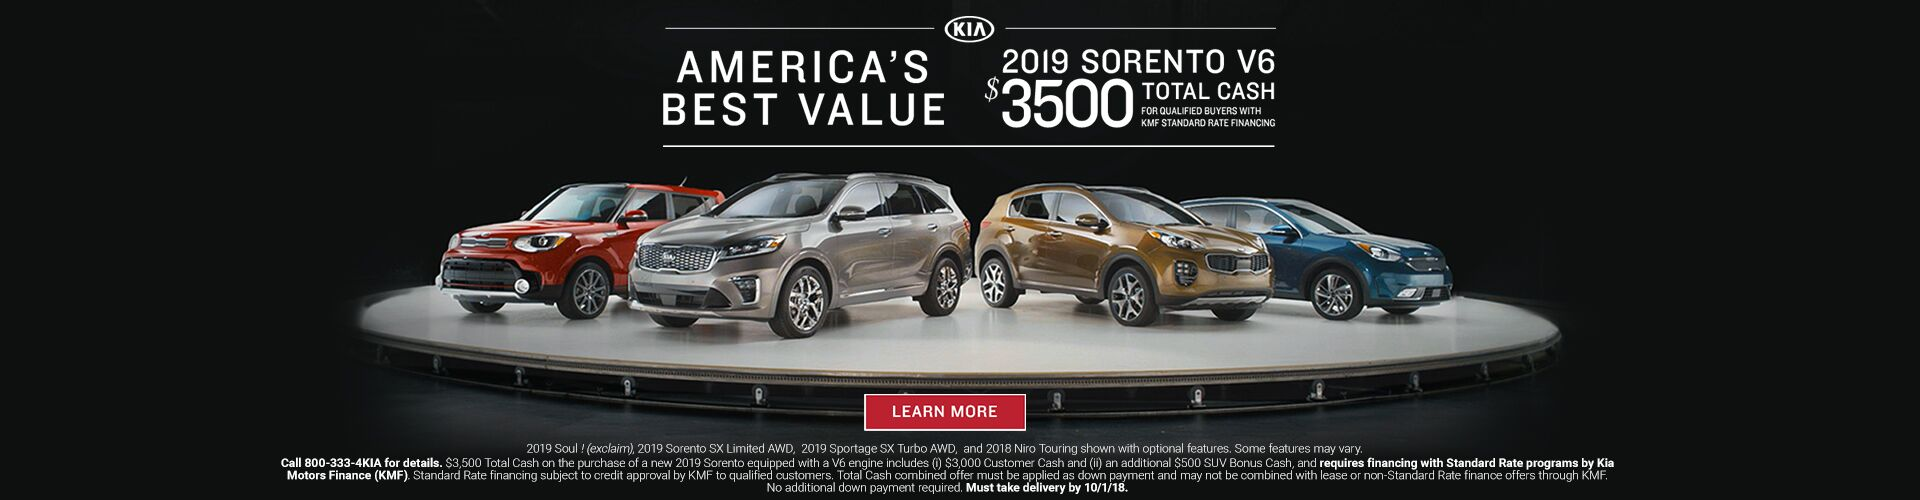 America's Best Value 2019 Sorento Motion Kia